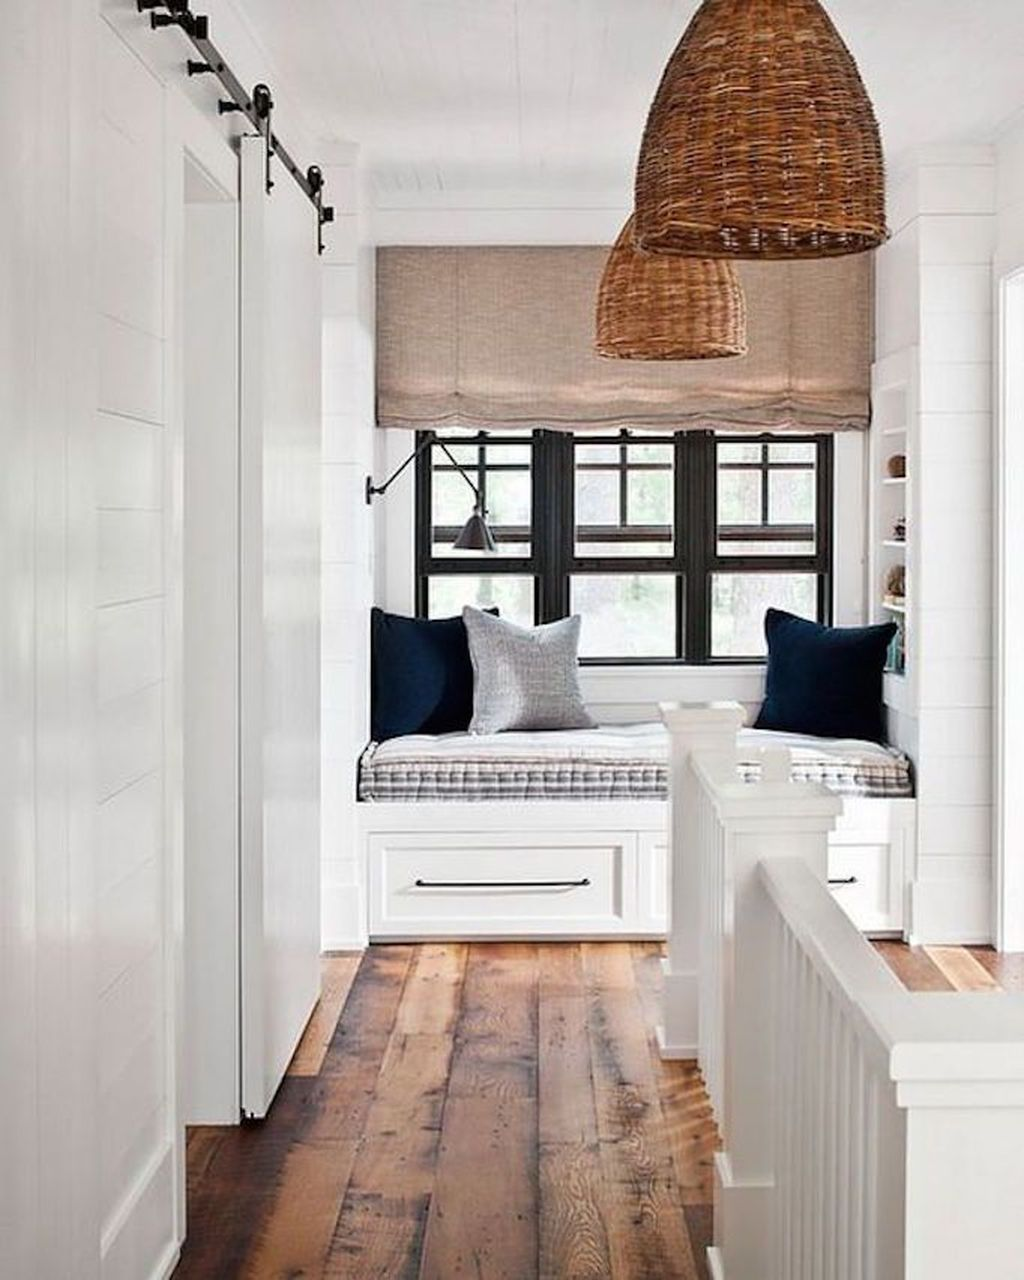 Nice 50 Rustic Farmhouse Banquette Seating in Kitchen